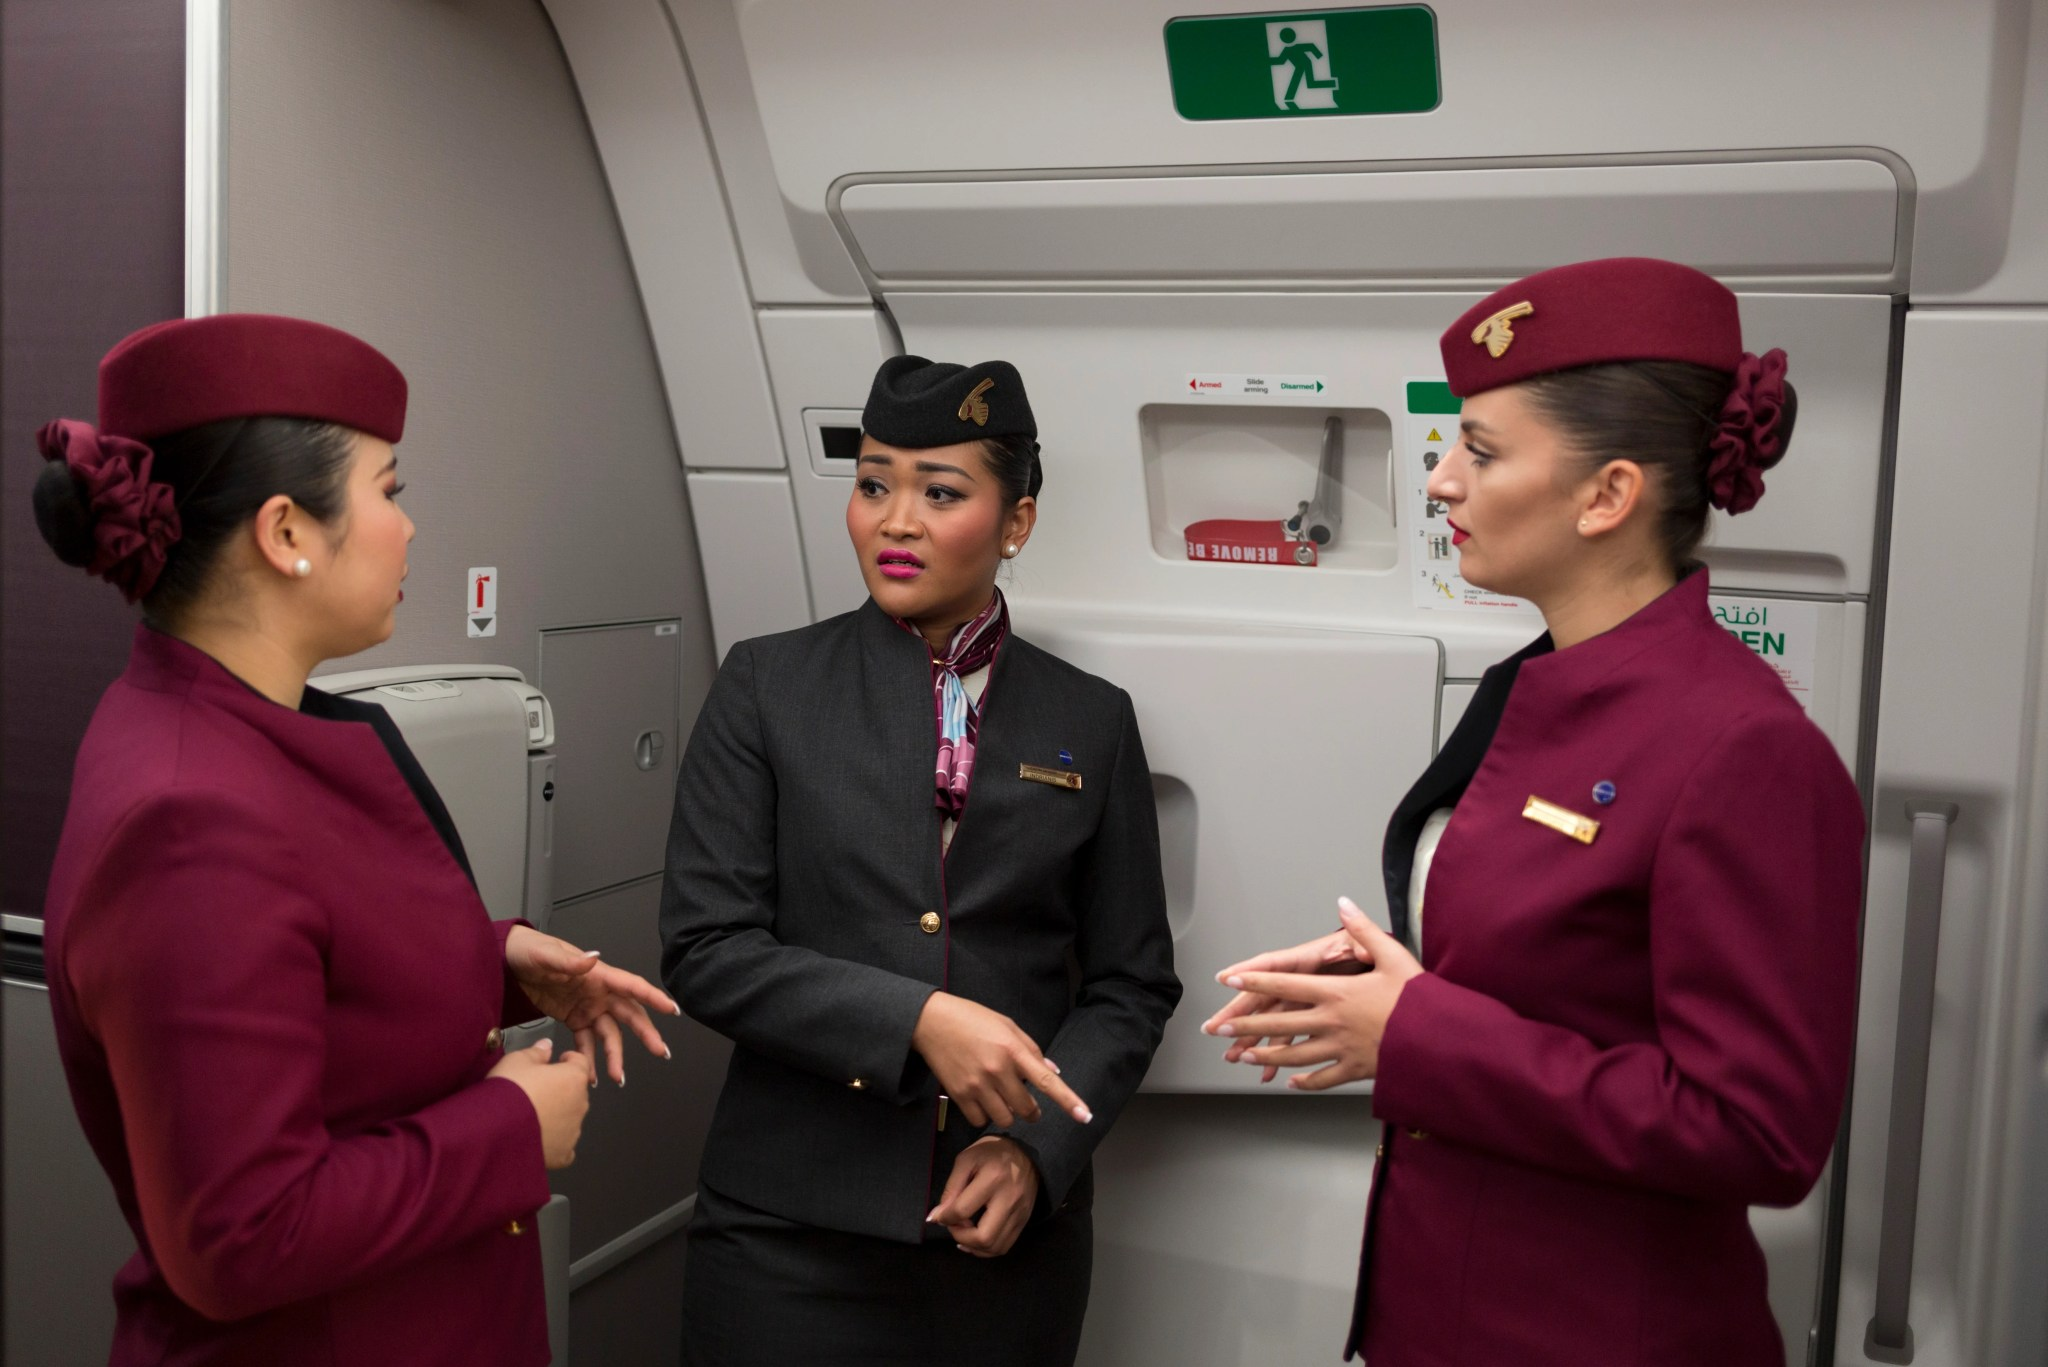 Air Italy S Familiar Looking New Uniforms Likely To Fuel Concerns About Ties To Qatar